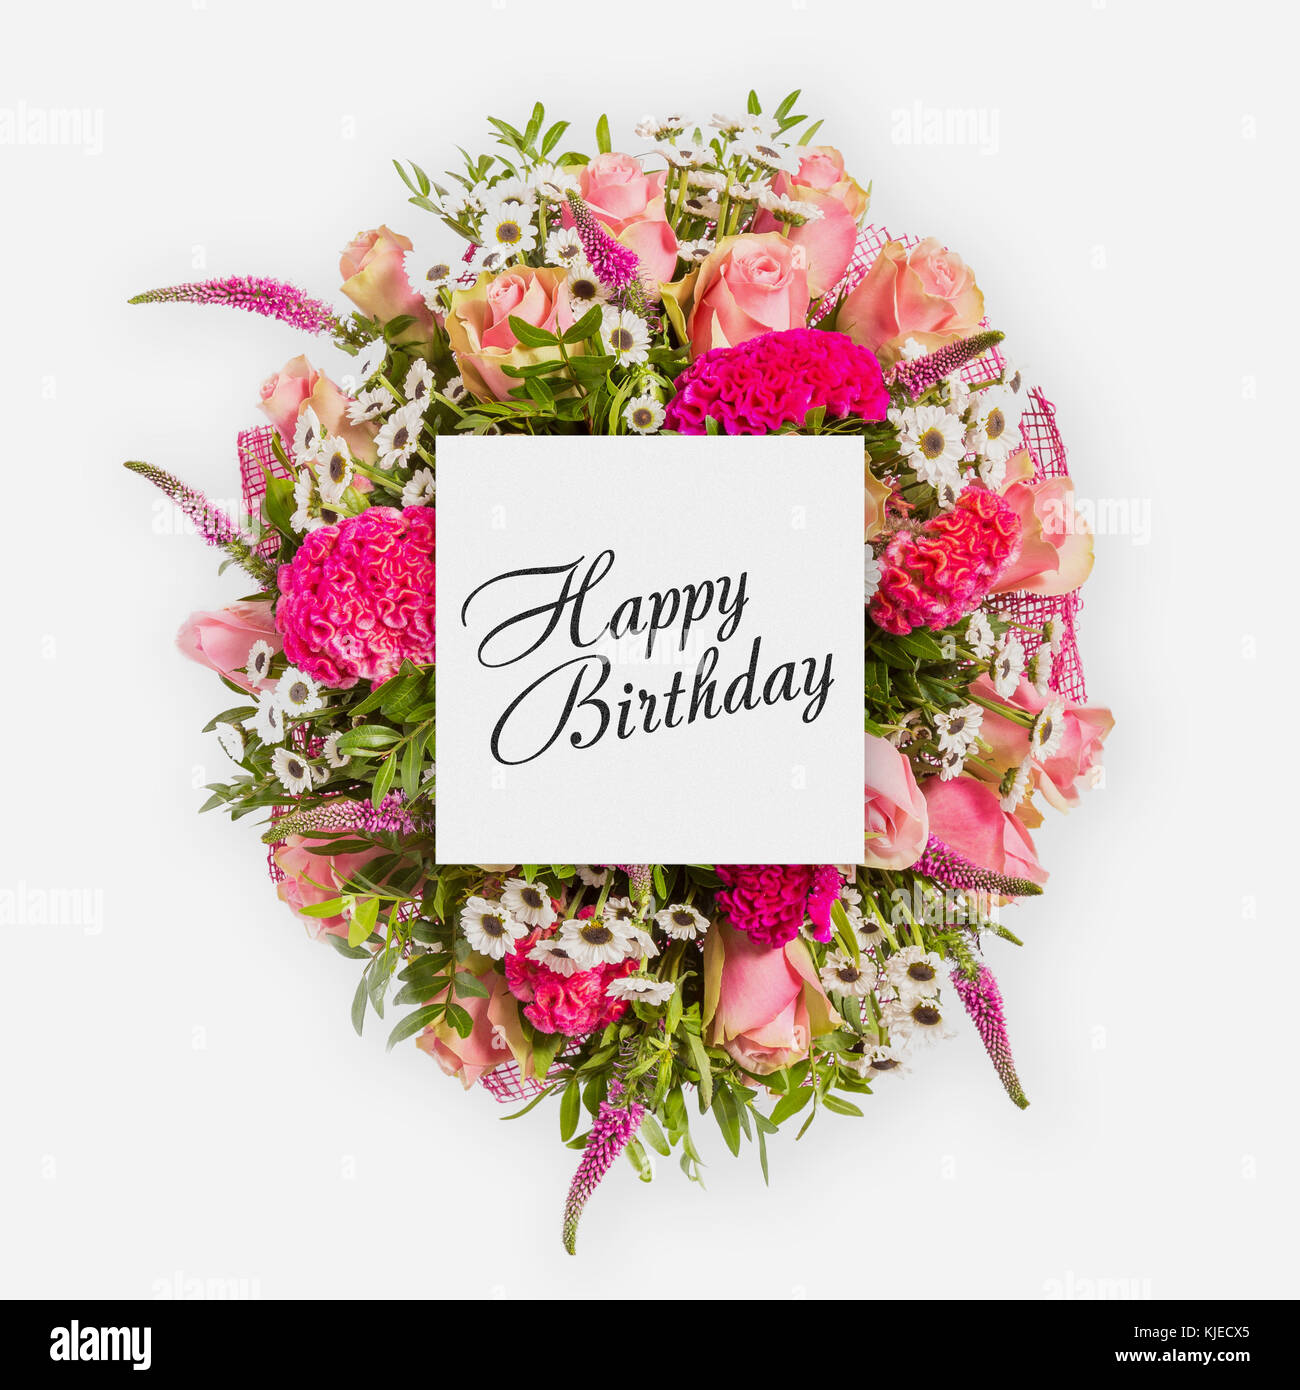 Happy birthday card with flowers flat lay stock photo 166274589 alamy happy birthday card with flowers flat lay izmirmasajfo Image collections